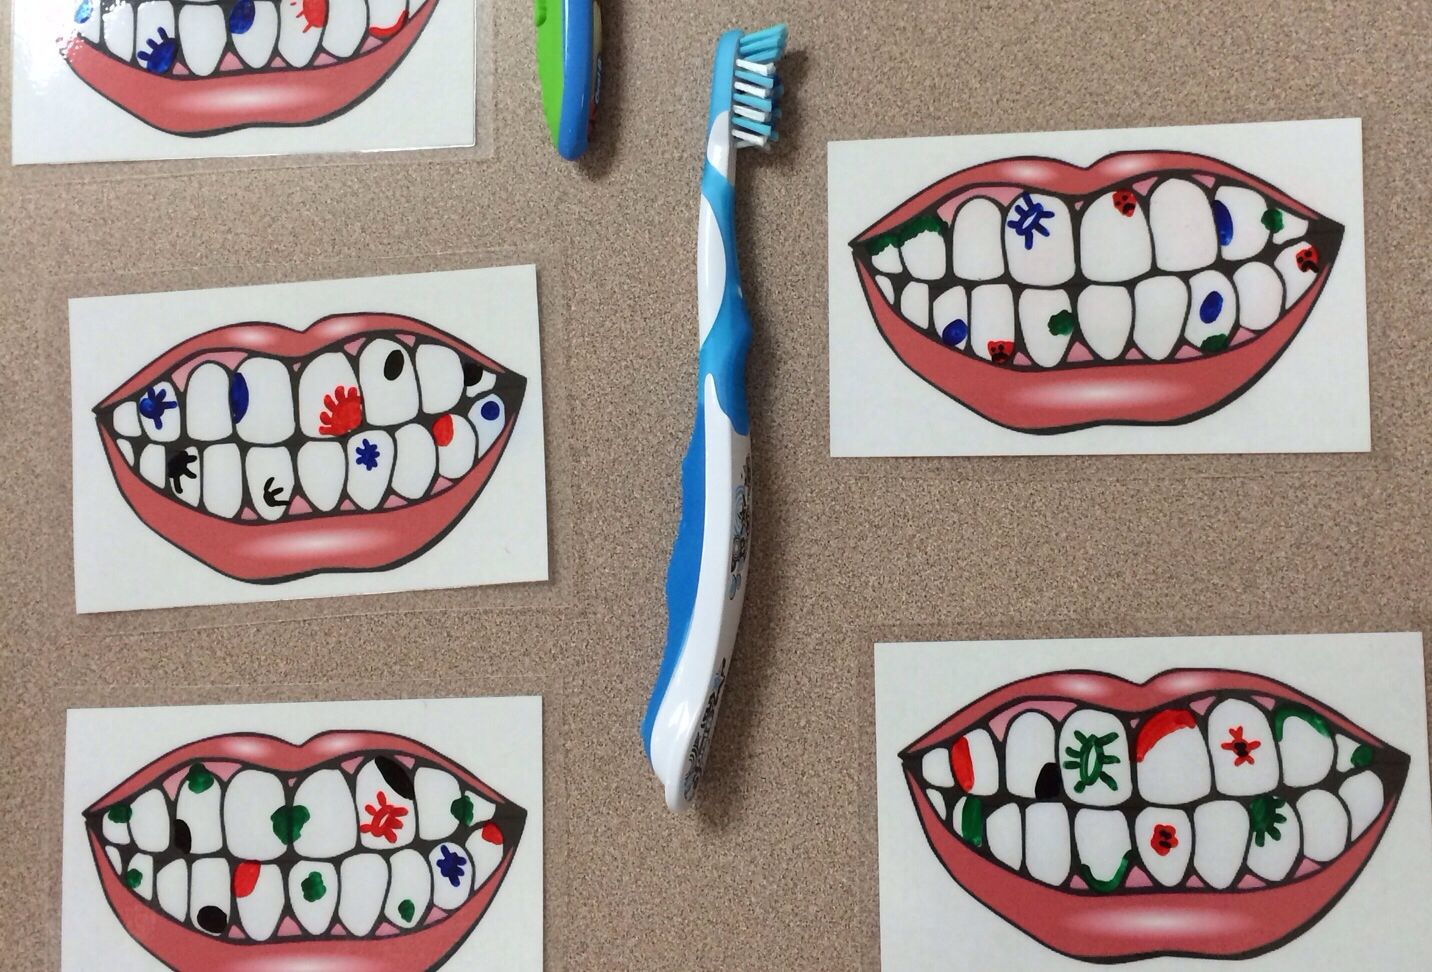 Print Out Pictures Of Teeth And Have Them Laminated Then Use Dry Erase Markers To Draw Sugar